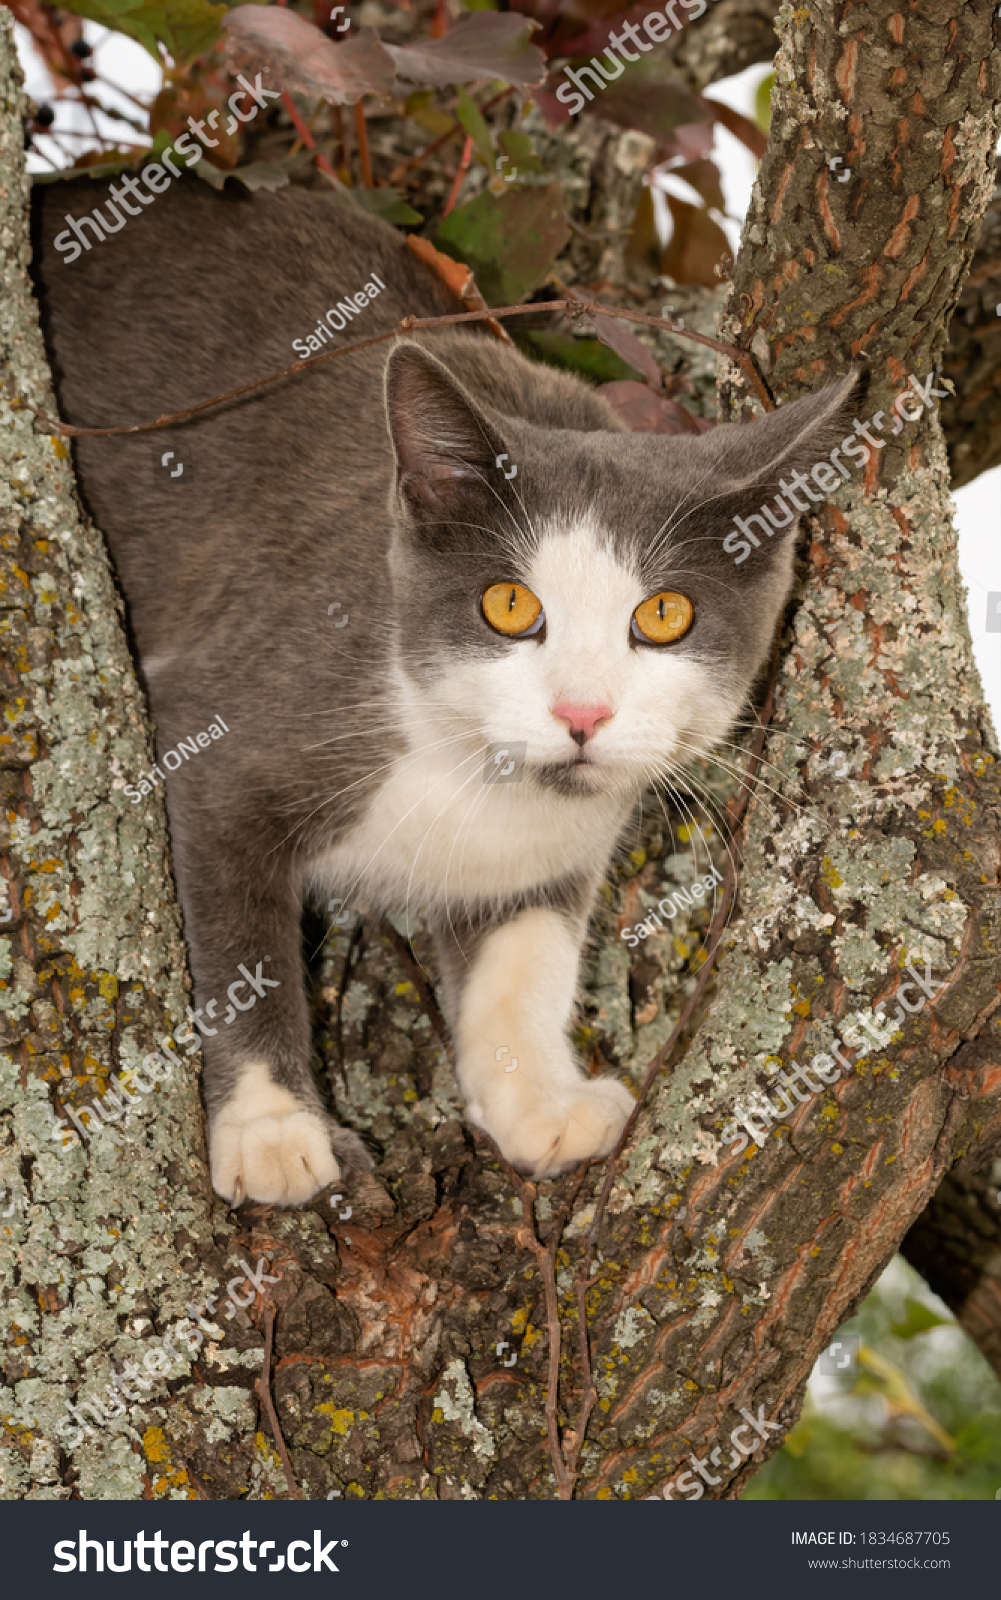 stock-photo-blue-and-white-spotted-cat-u